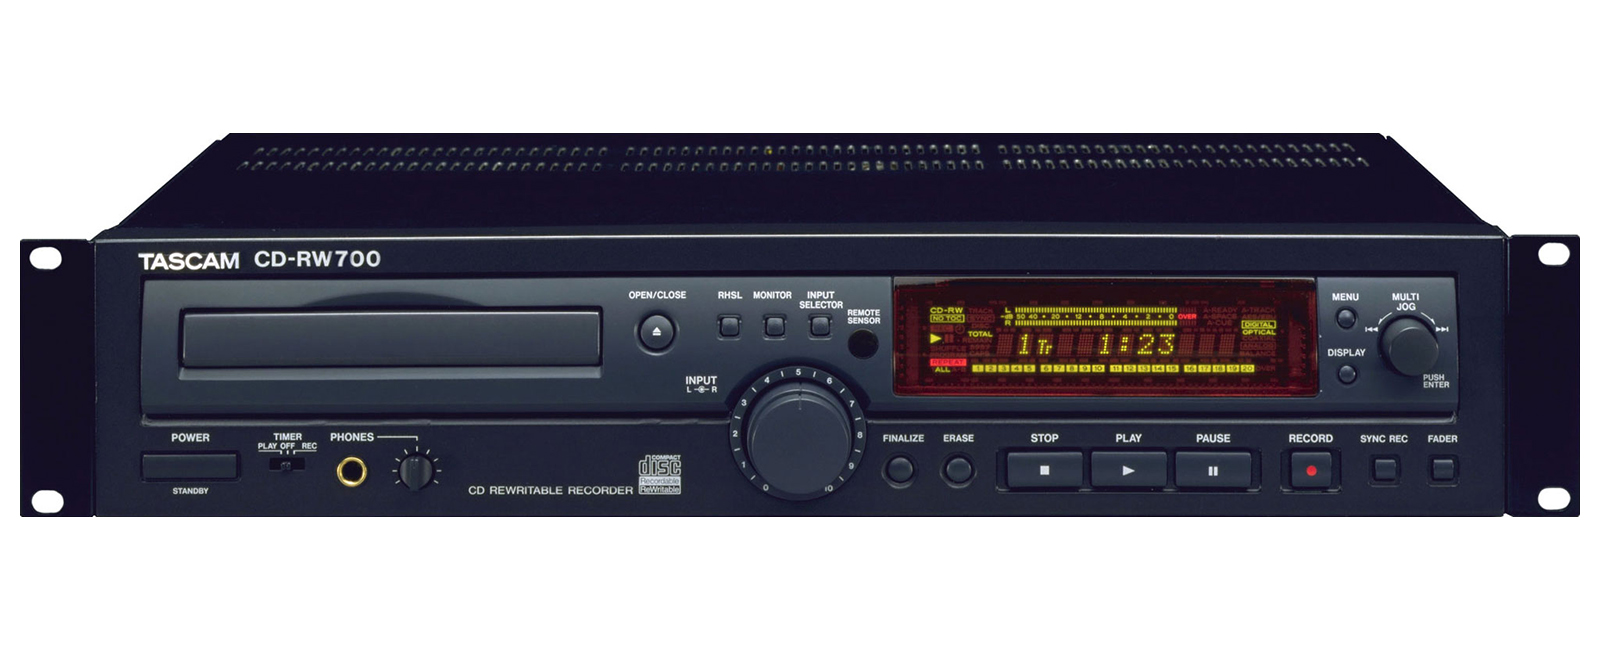 Tascam CD-RW700 operating instructions user manual